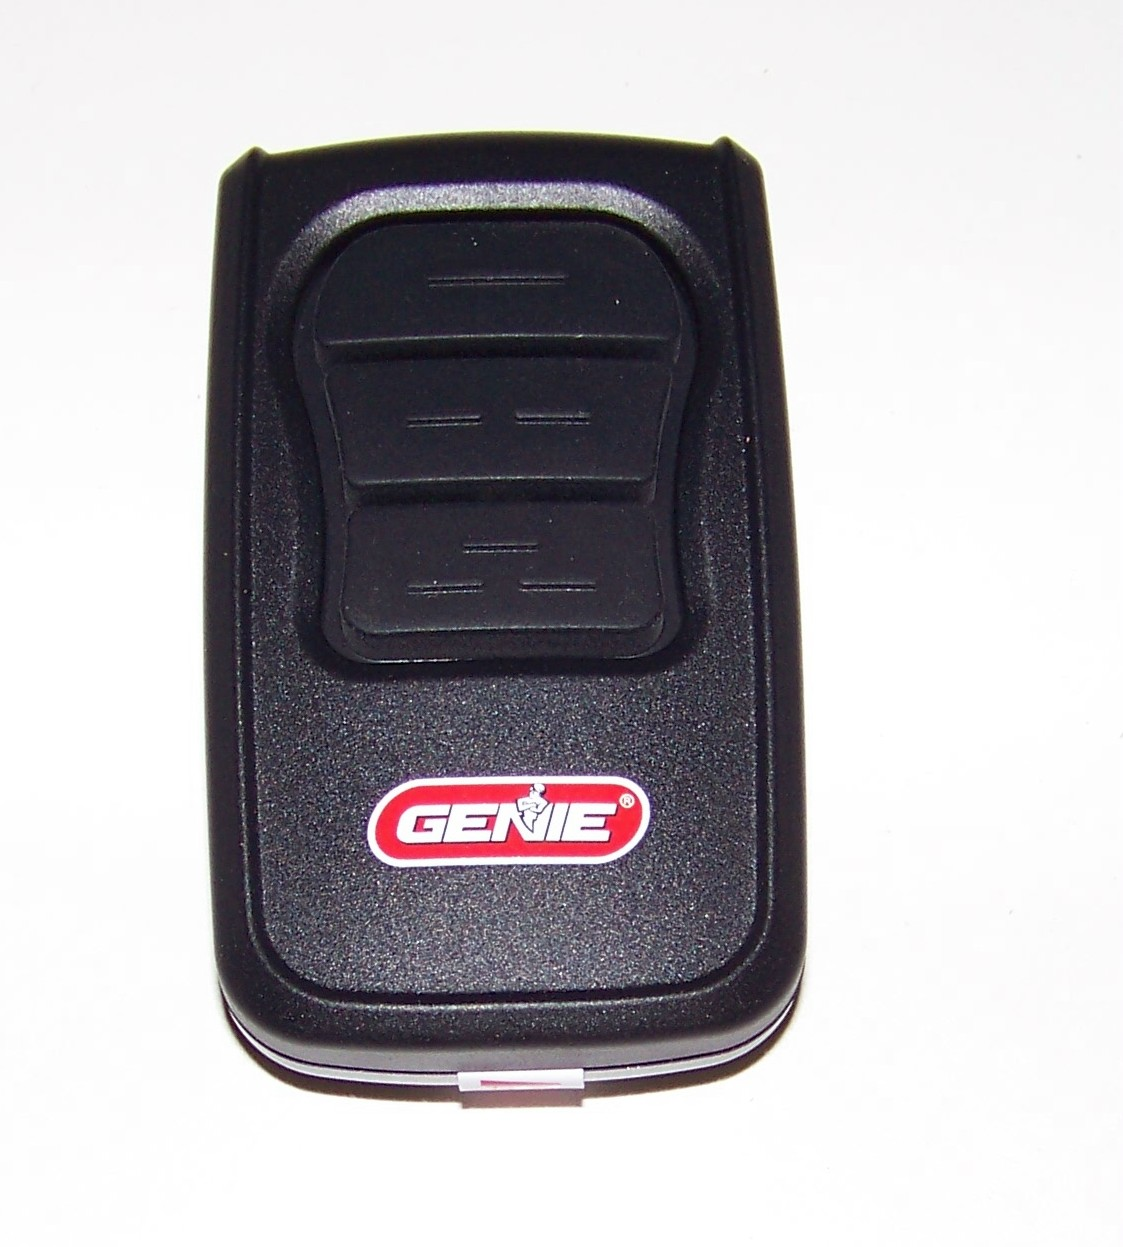 Garage Door Opener Remote Set Up How To Program Genie Garage Door Opener Remotes